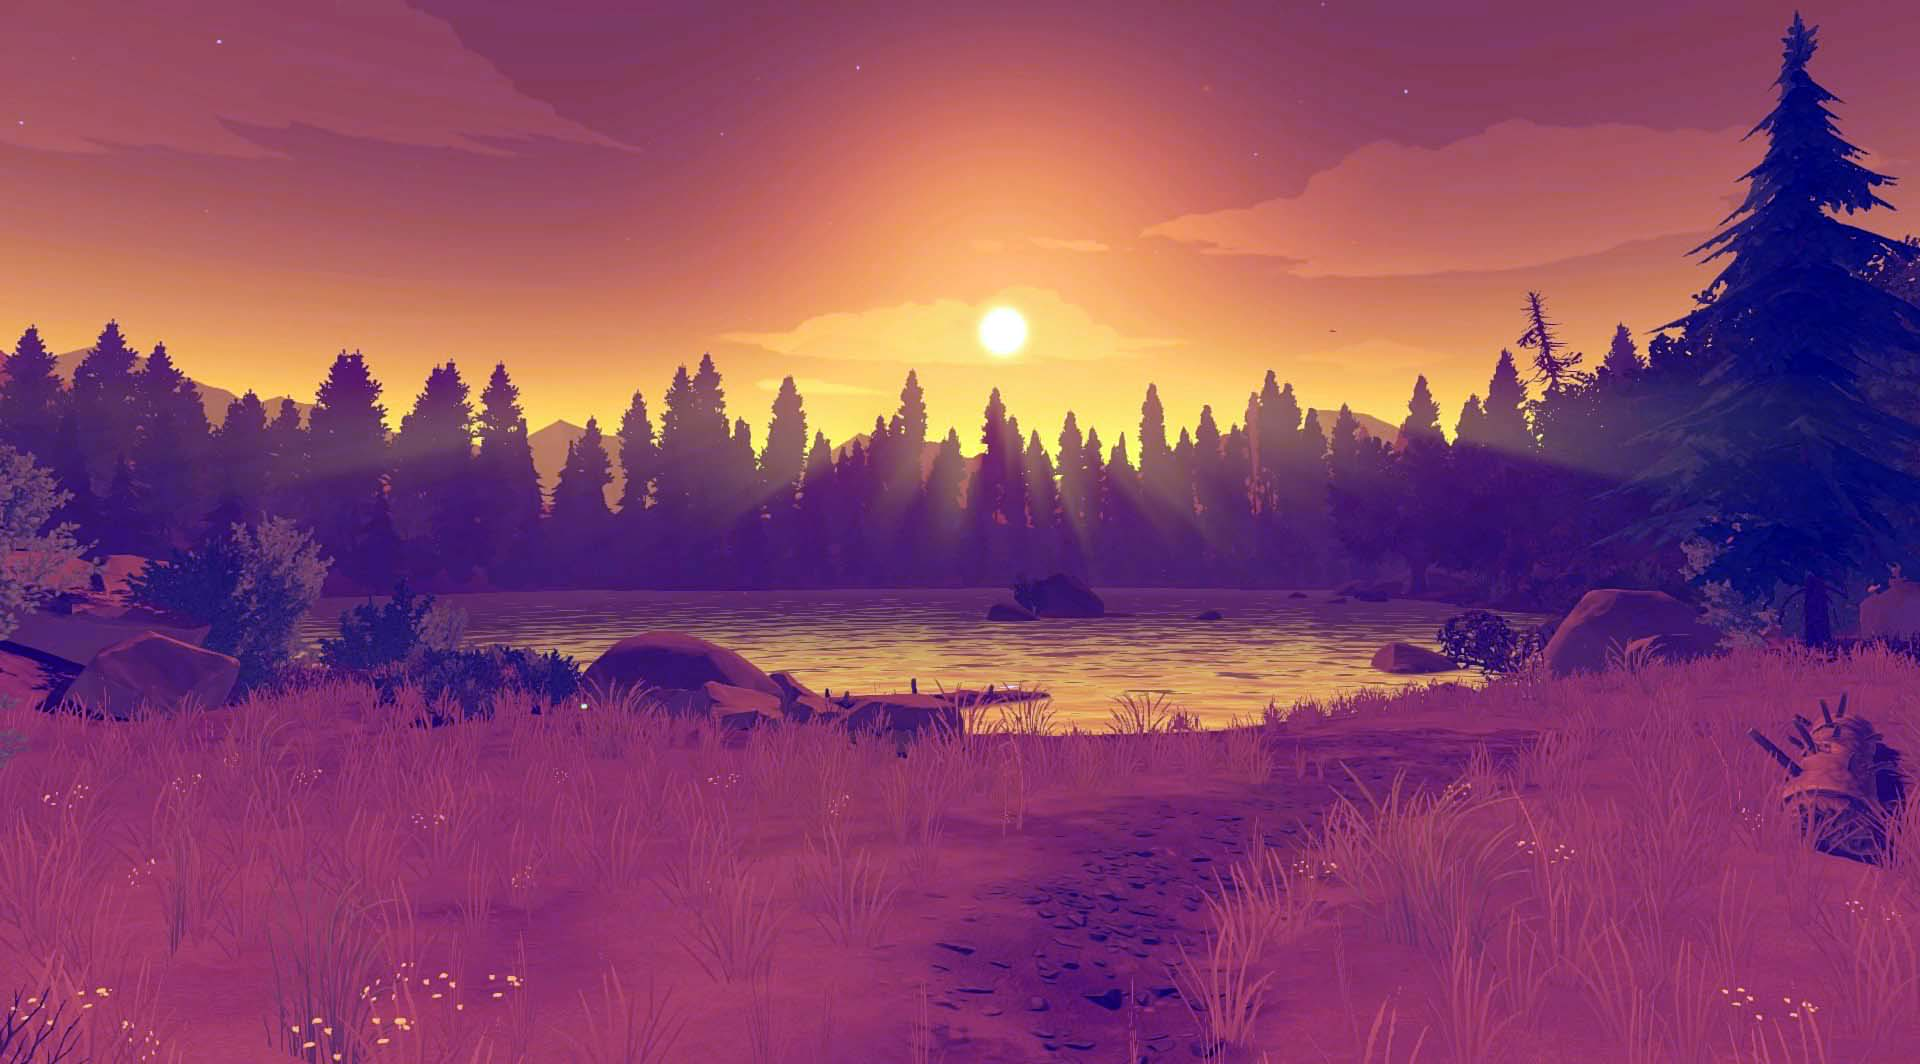 Fun In The World Of Games Hd Wallpapers: 23 HD Firewatch Game Wallpapers